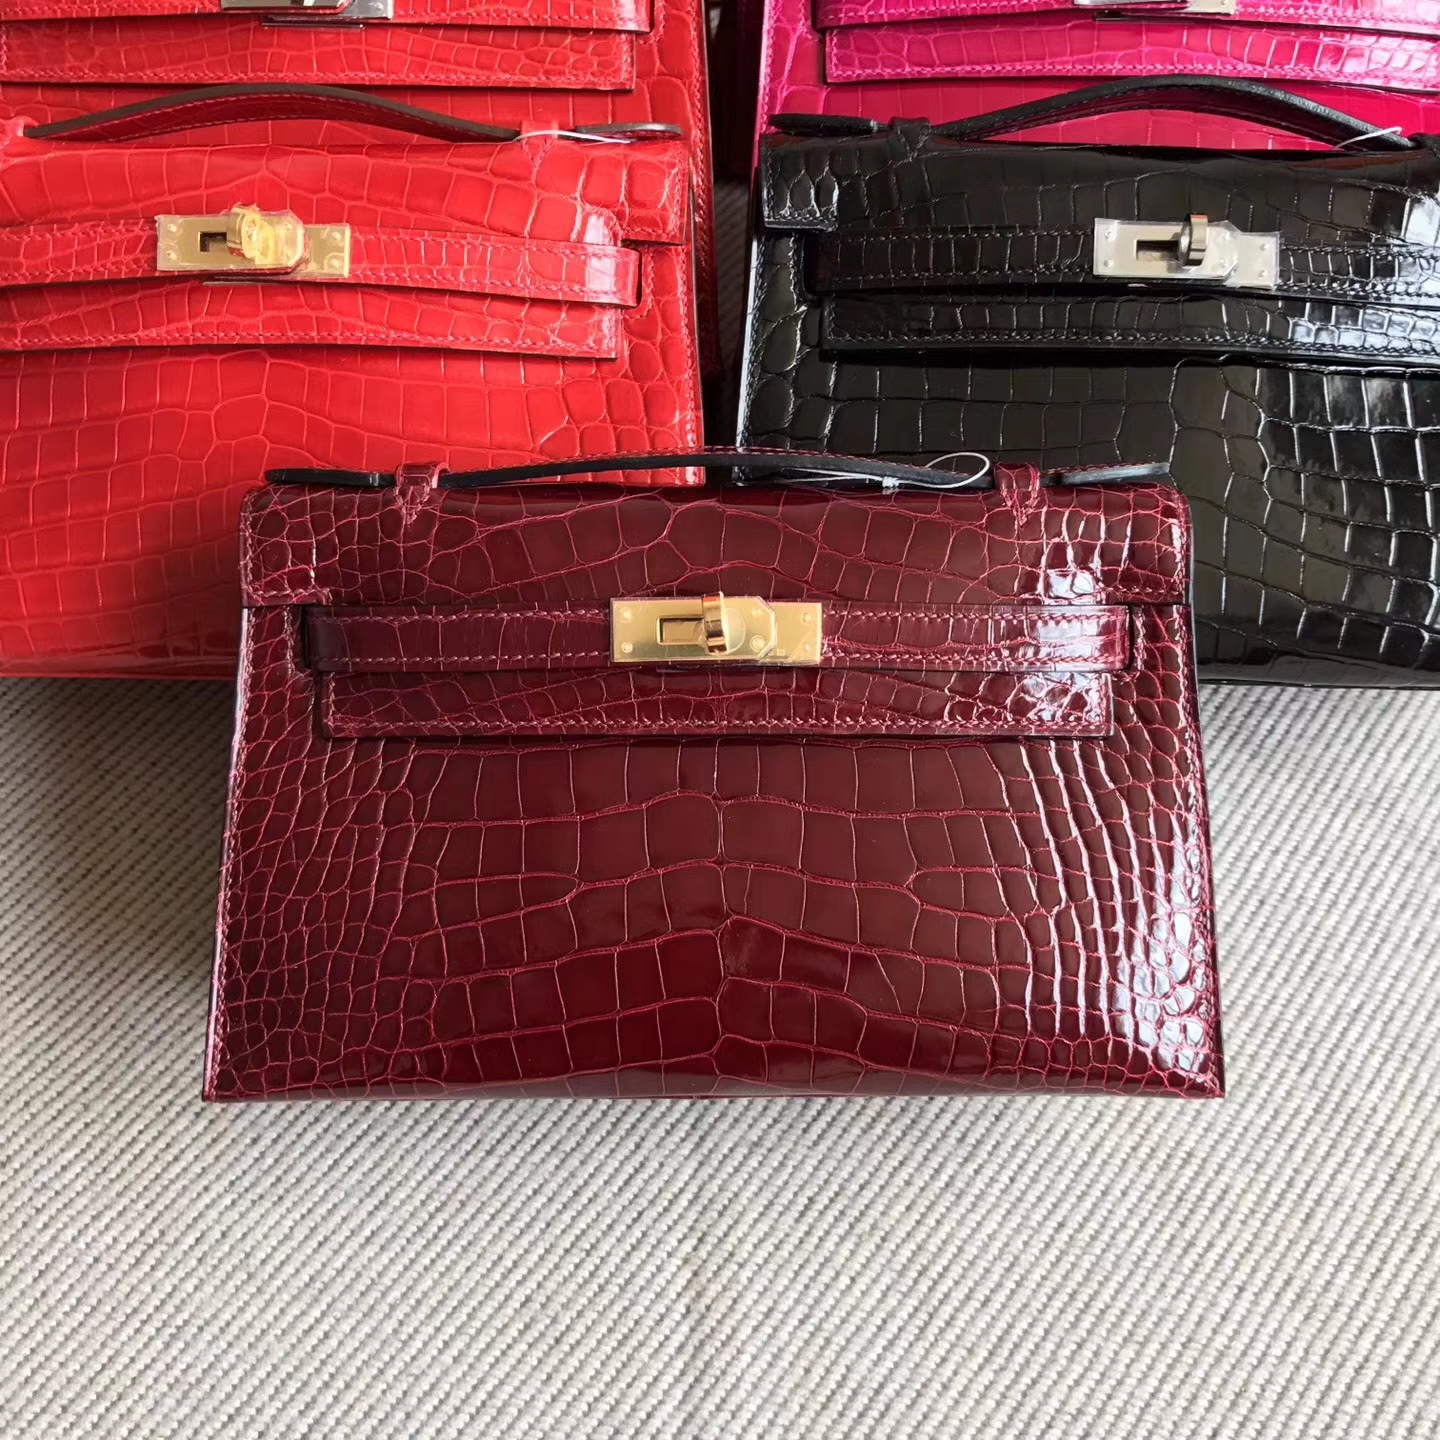 New Hermes Shiny Alligator Crocodile Minikelly22cm Clutch Bag in F5 Bourgogne Red